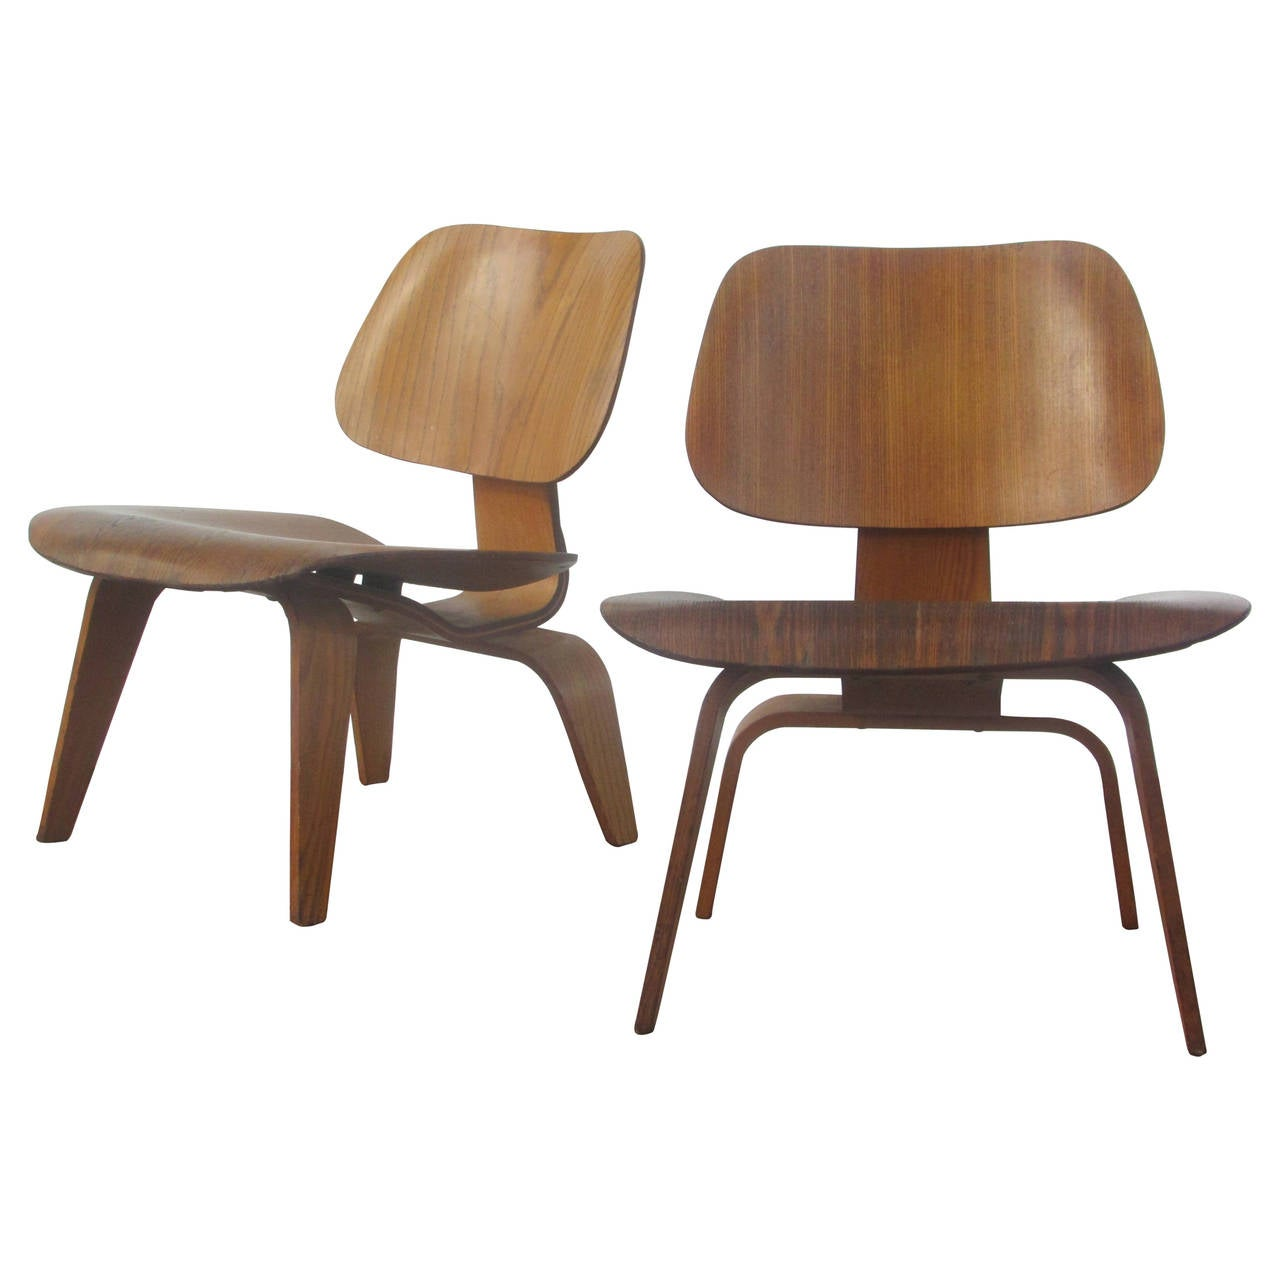 early eames lcw lounge chairs at 1stdibs. Black Bedroom Furniture Sets. Home Design Ideas